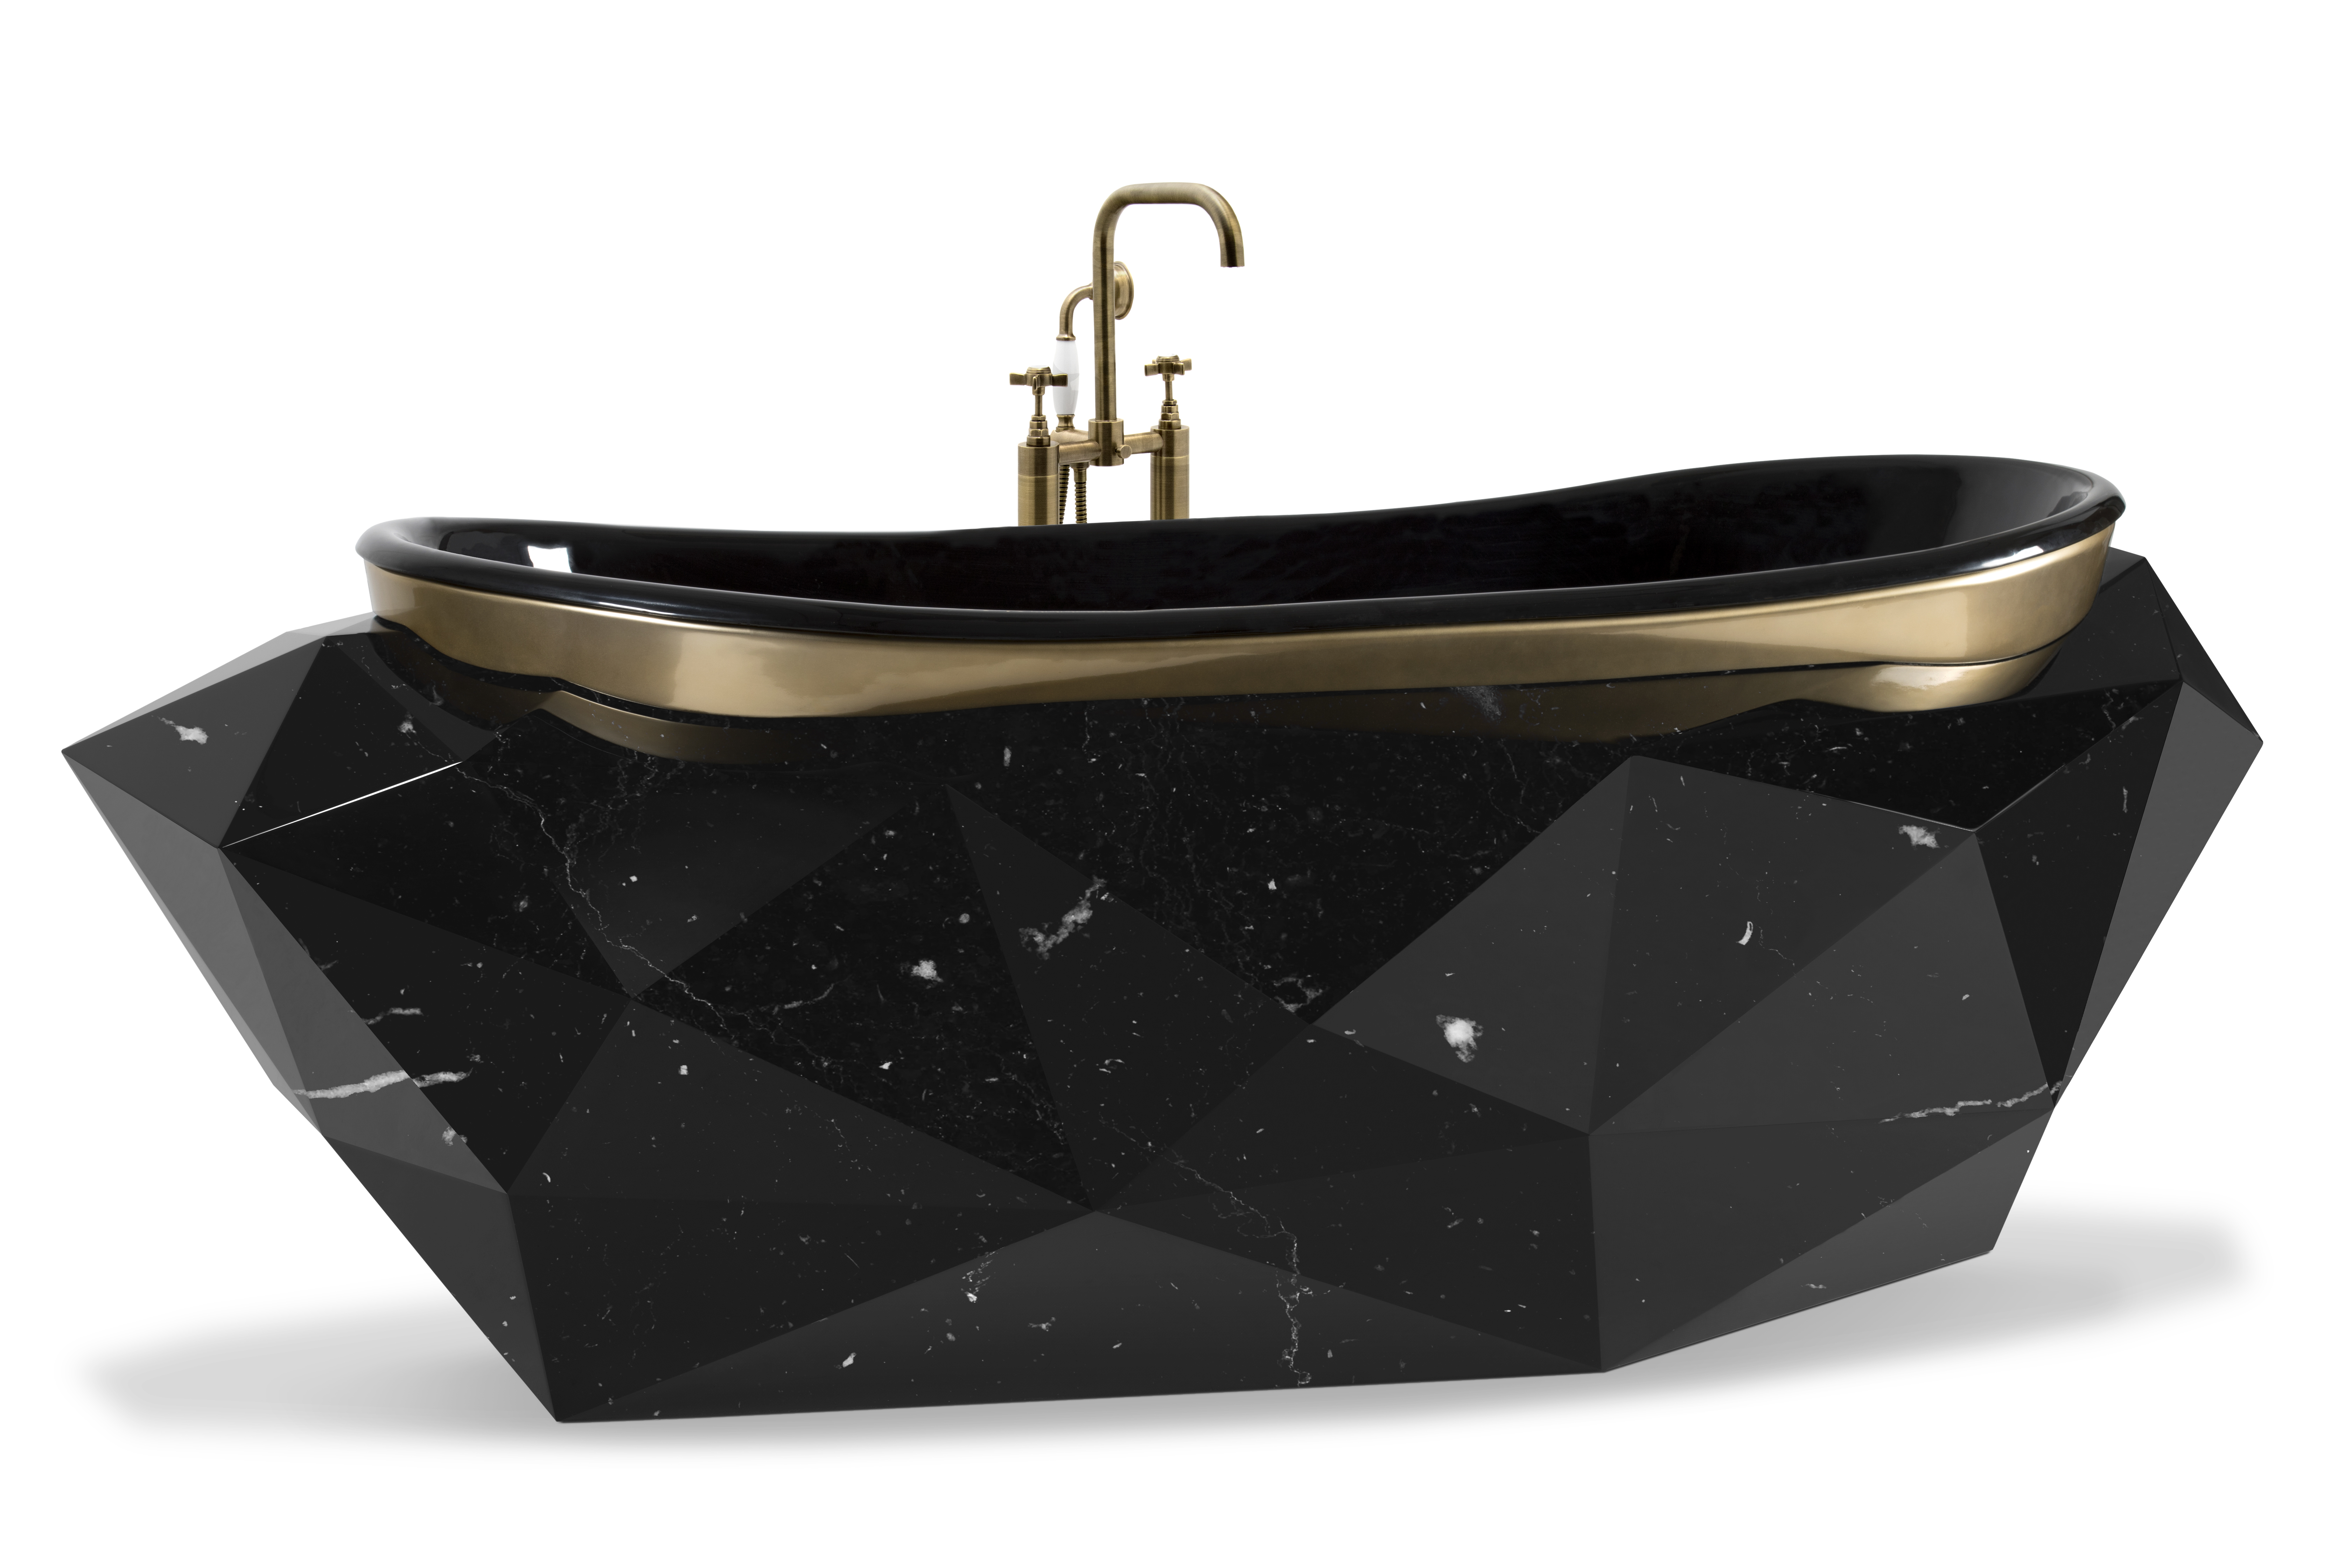 Luxe at home: Maison Valentina presents the latest Diamond Bathtubs Diamond Bathtubs Luxe at home: Maison Valentina presents the latest Diamond Bathtubs diamond faux marble bathtub 16 HR